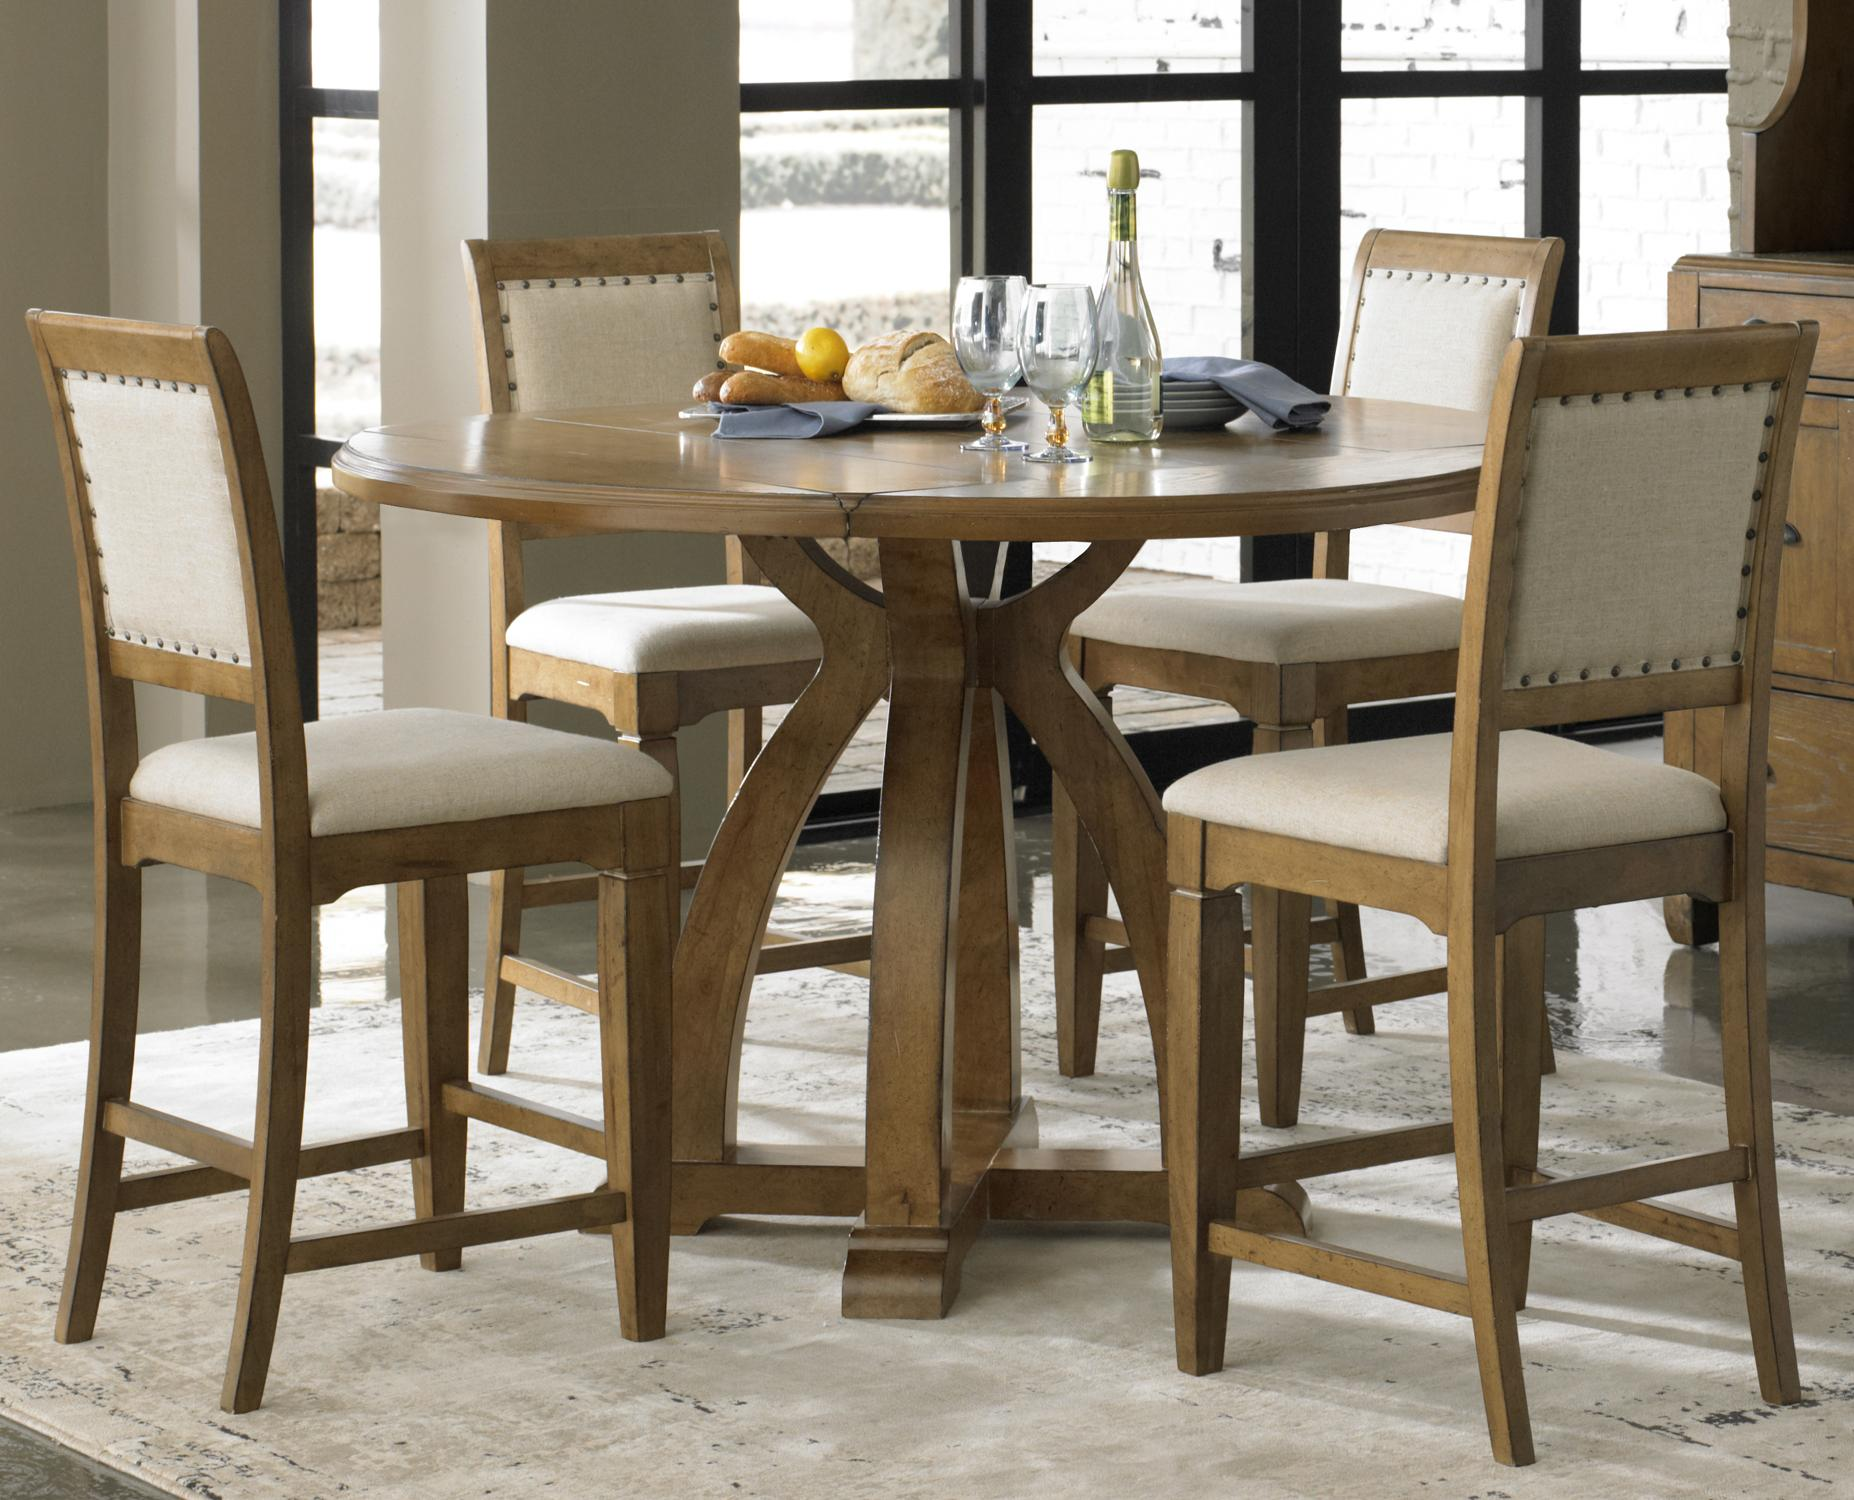 Counter Height Gathering Table Sets : Country 5-Piece Gathering Table Set with 4 Upholstered Counter Height ...